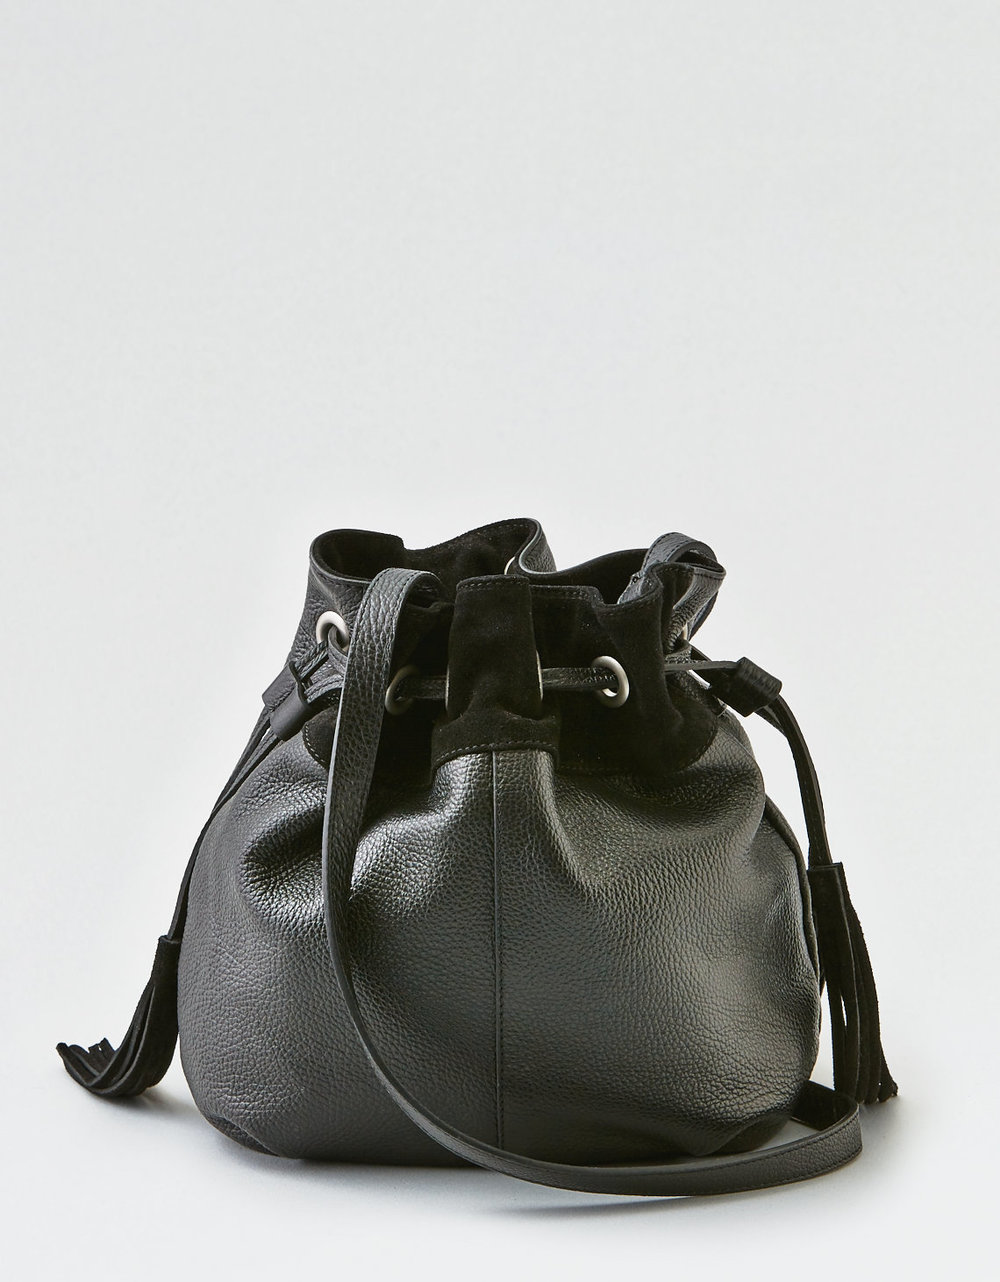 - WANDER LEATHER BUCKET BAG / American Eagle Outfitters $52.80